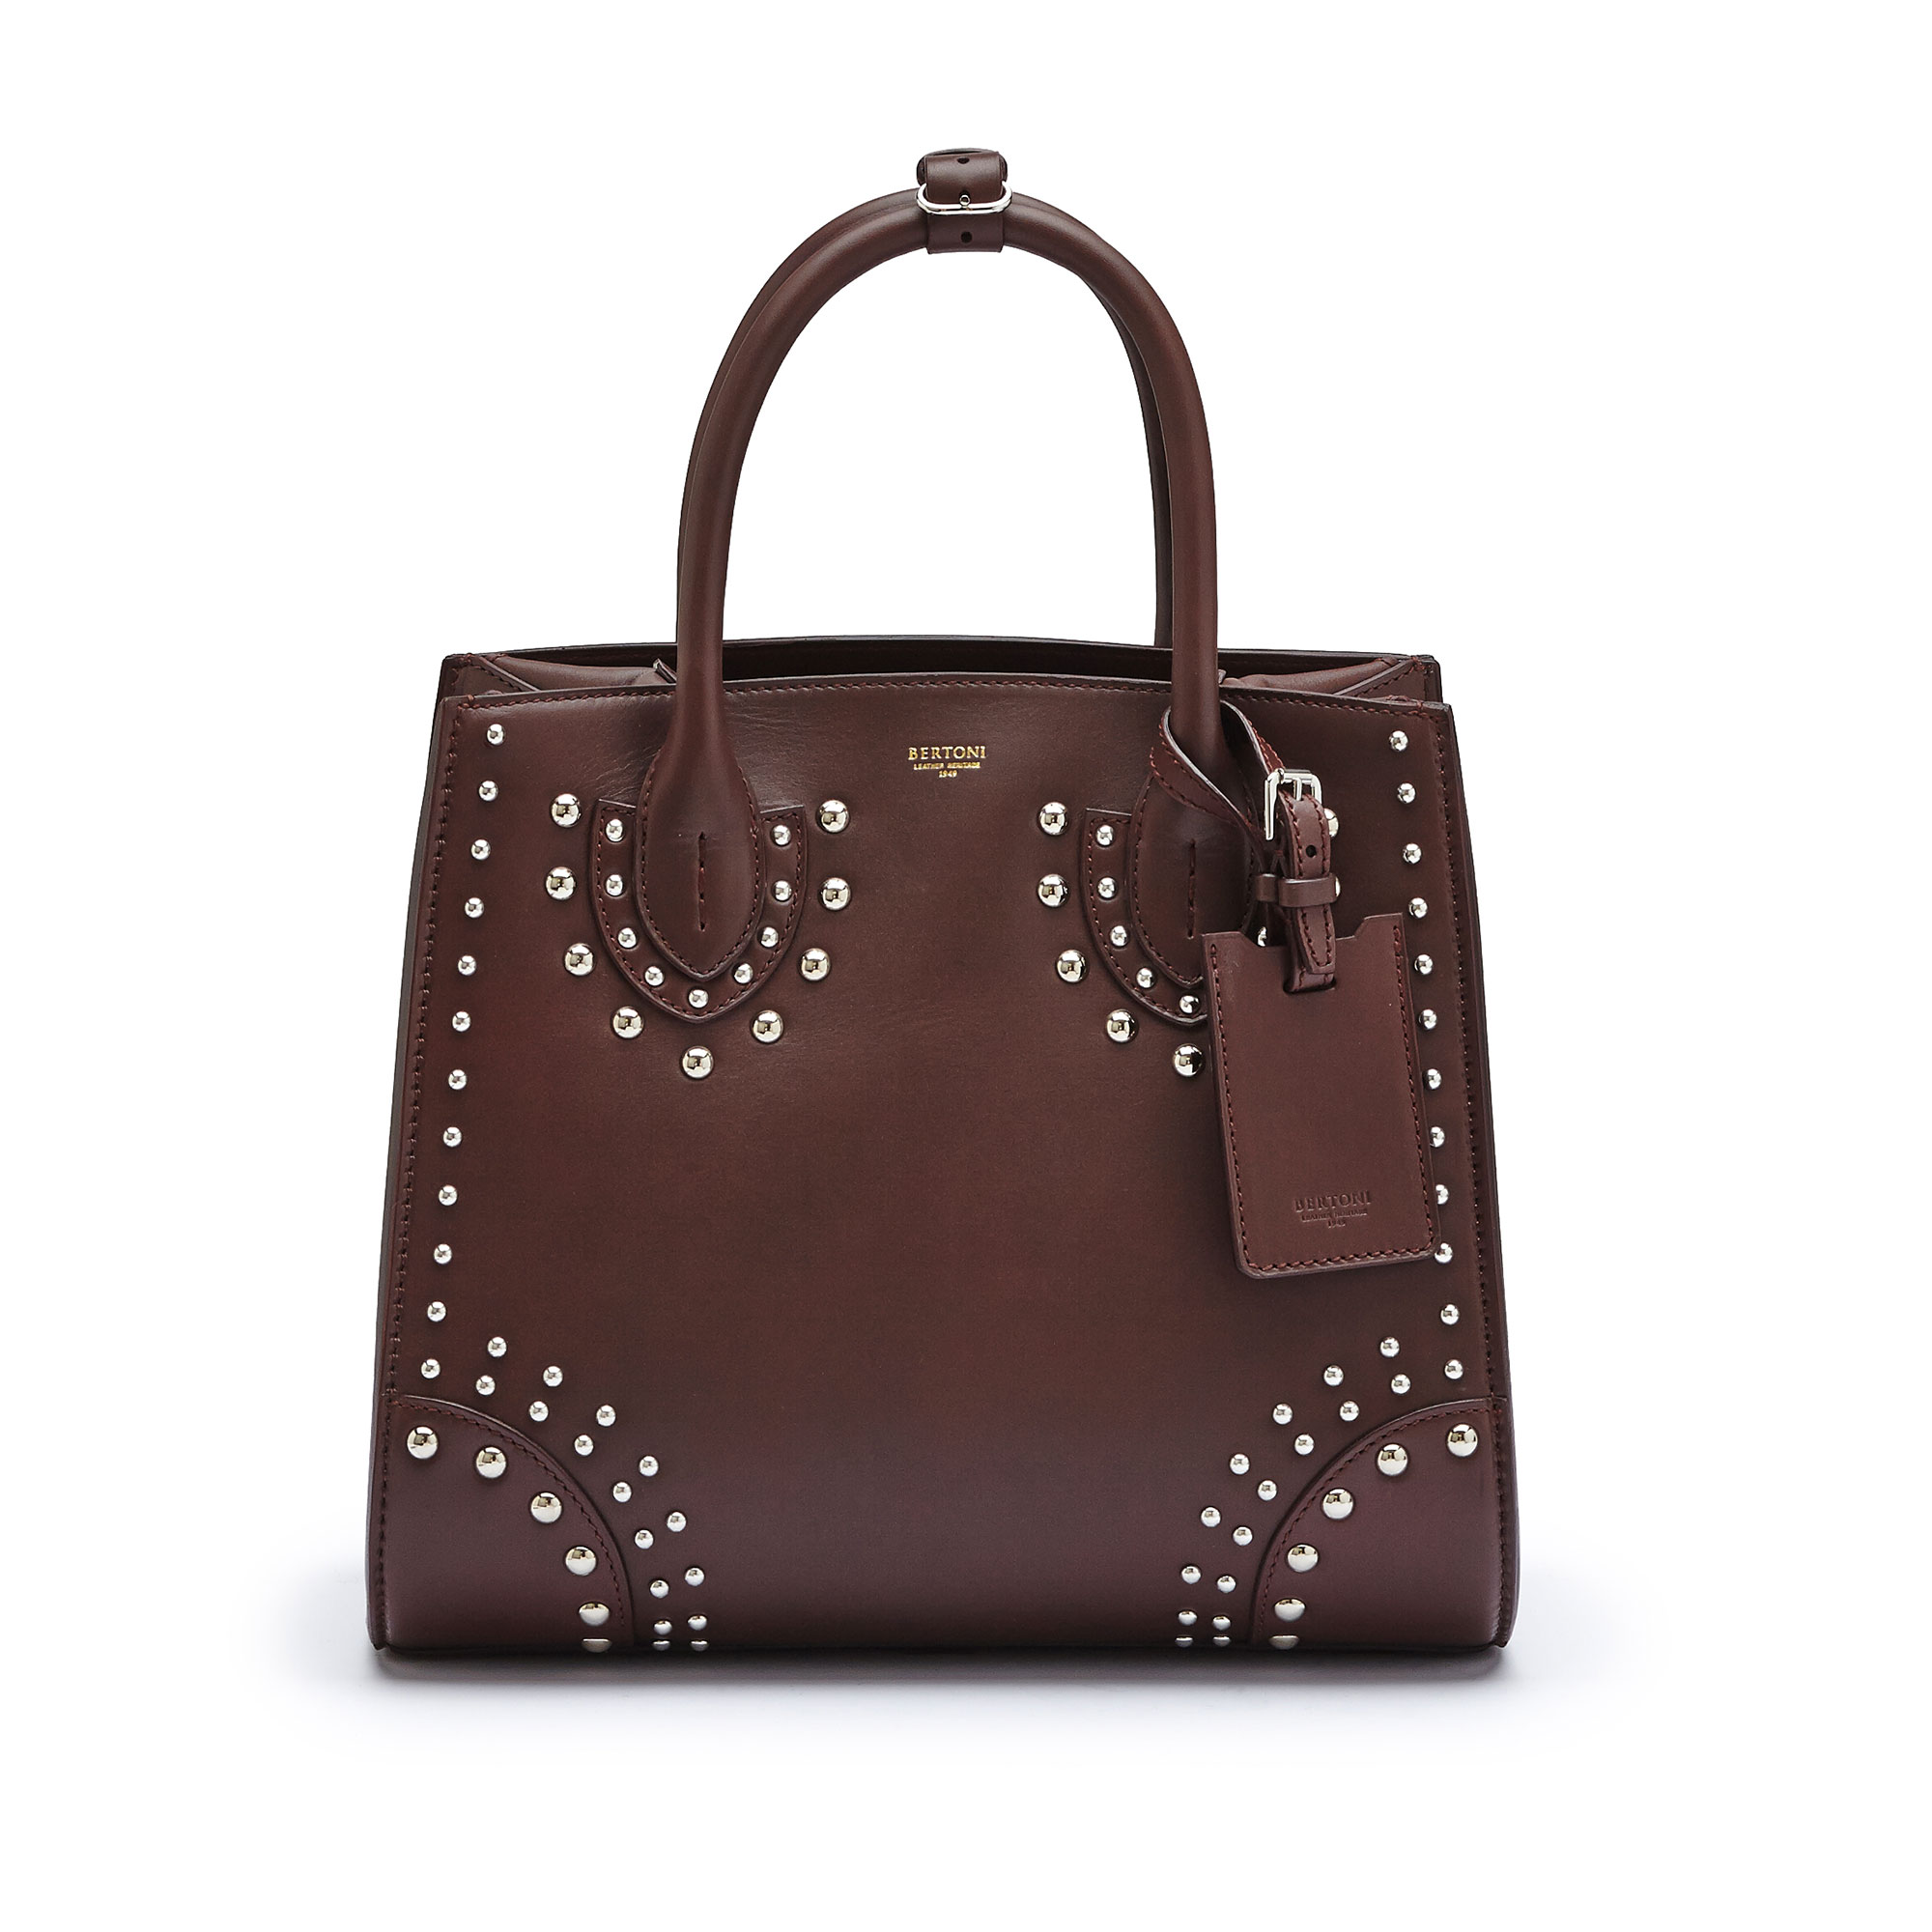 The bordeaux french calf Darcy with studs, medium bag by Bertoni 1949 02